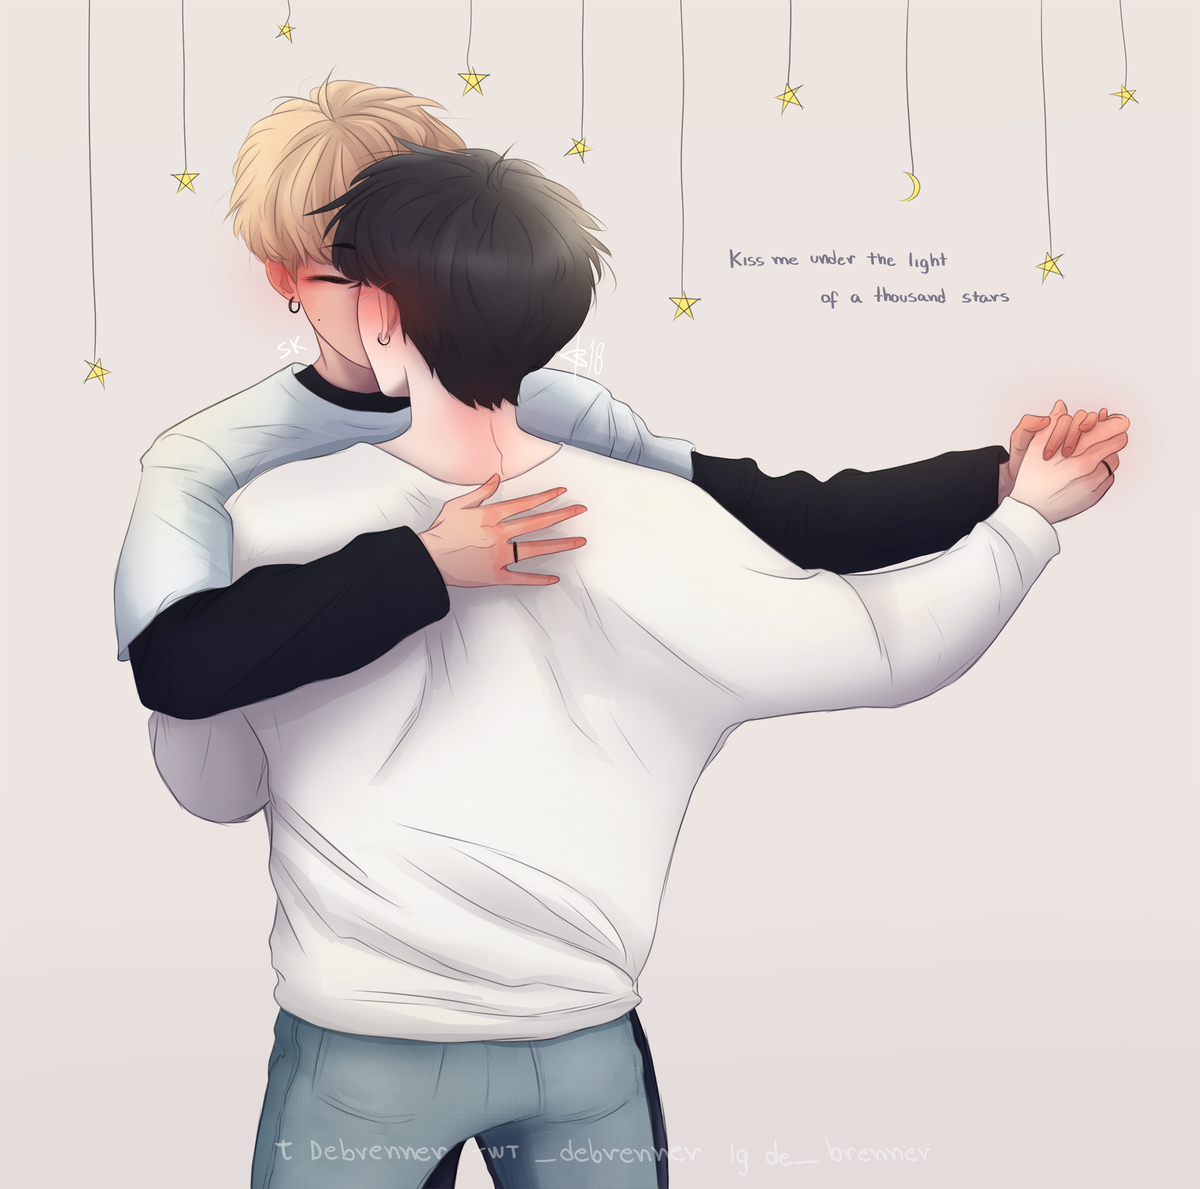 kookgi, yoonkook, nsb and bts fanart